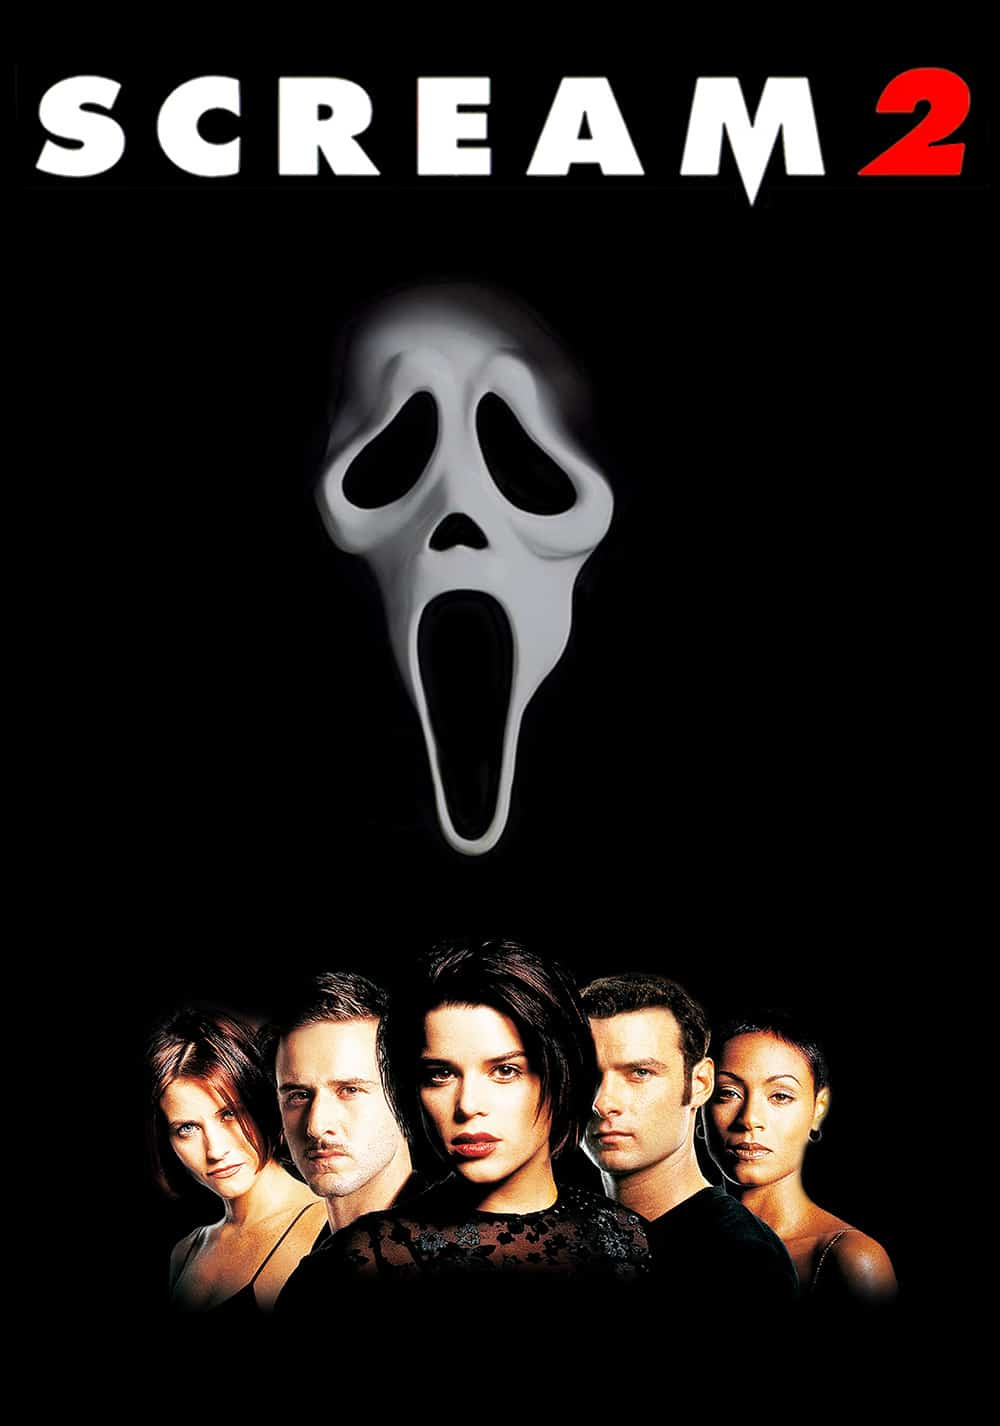 Scream 2 Review